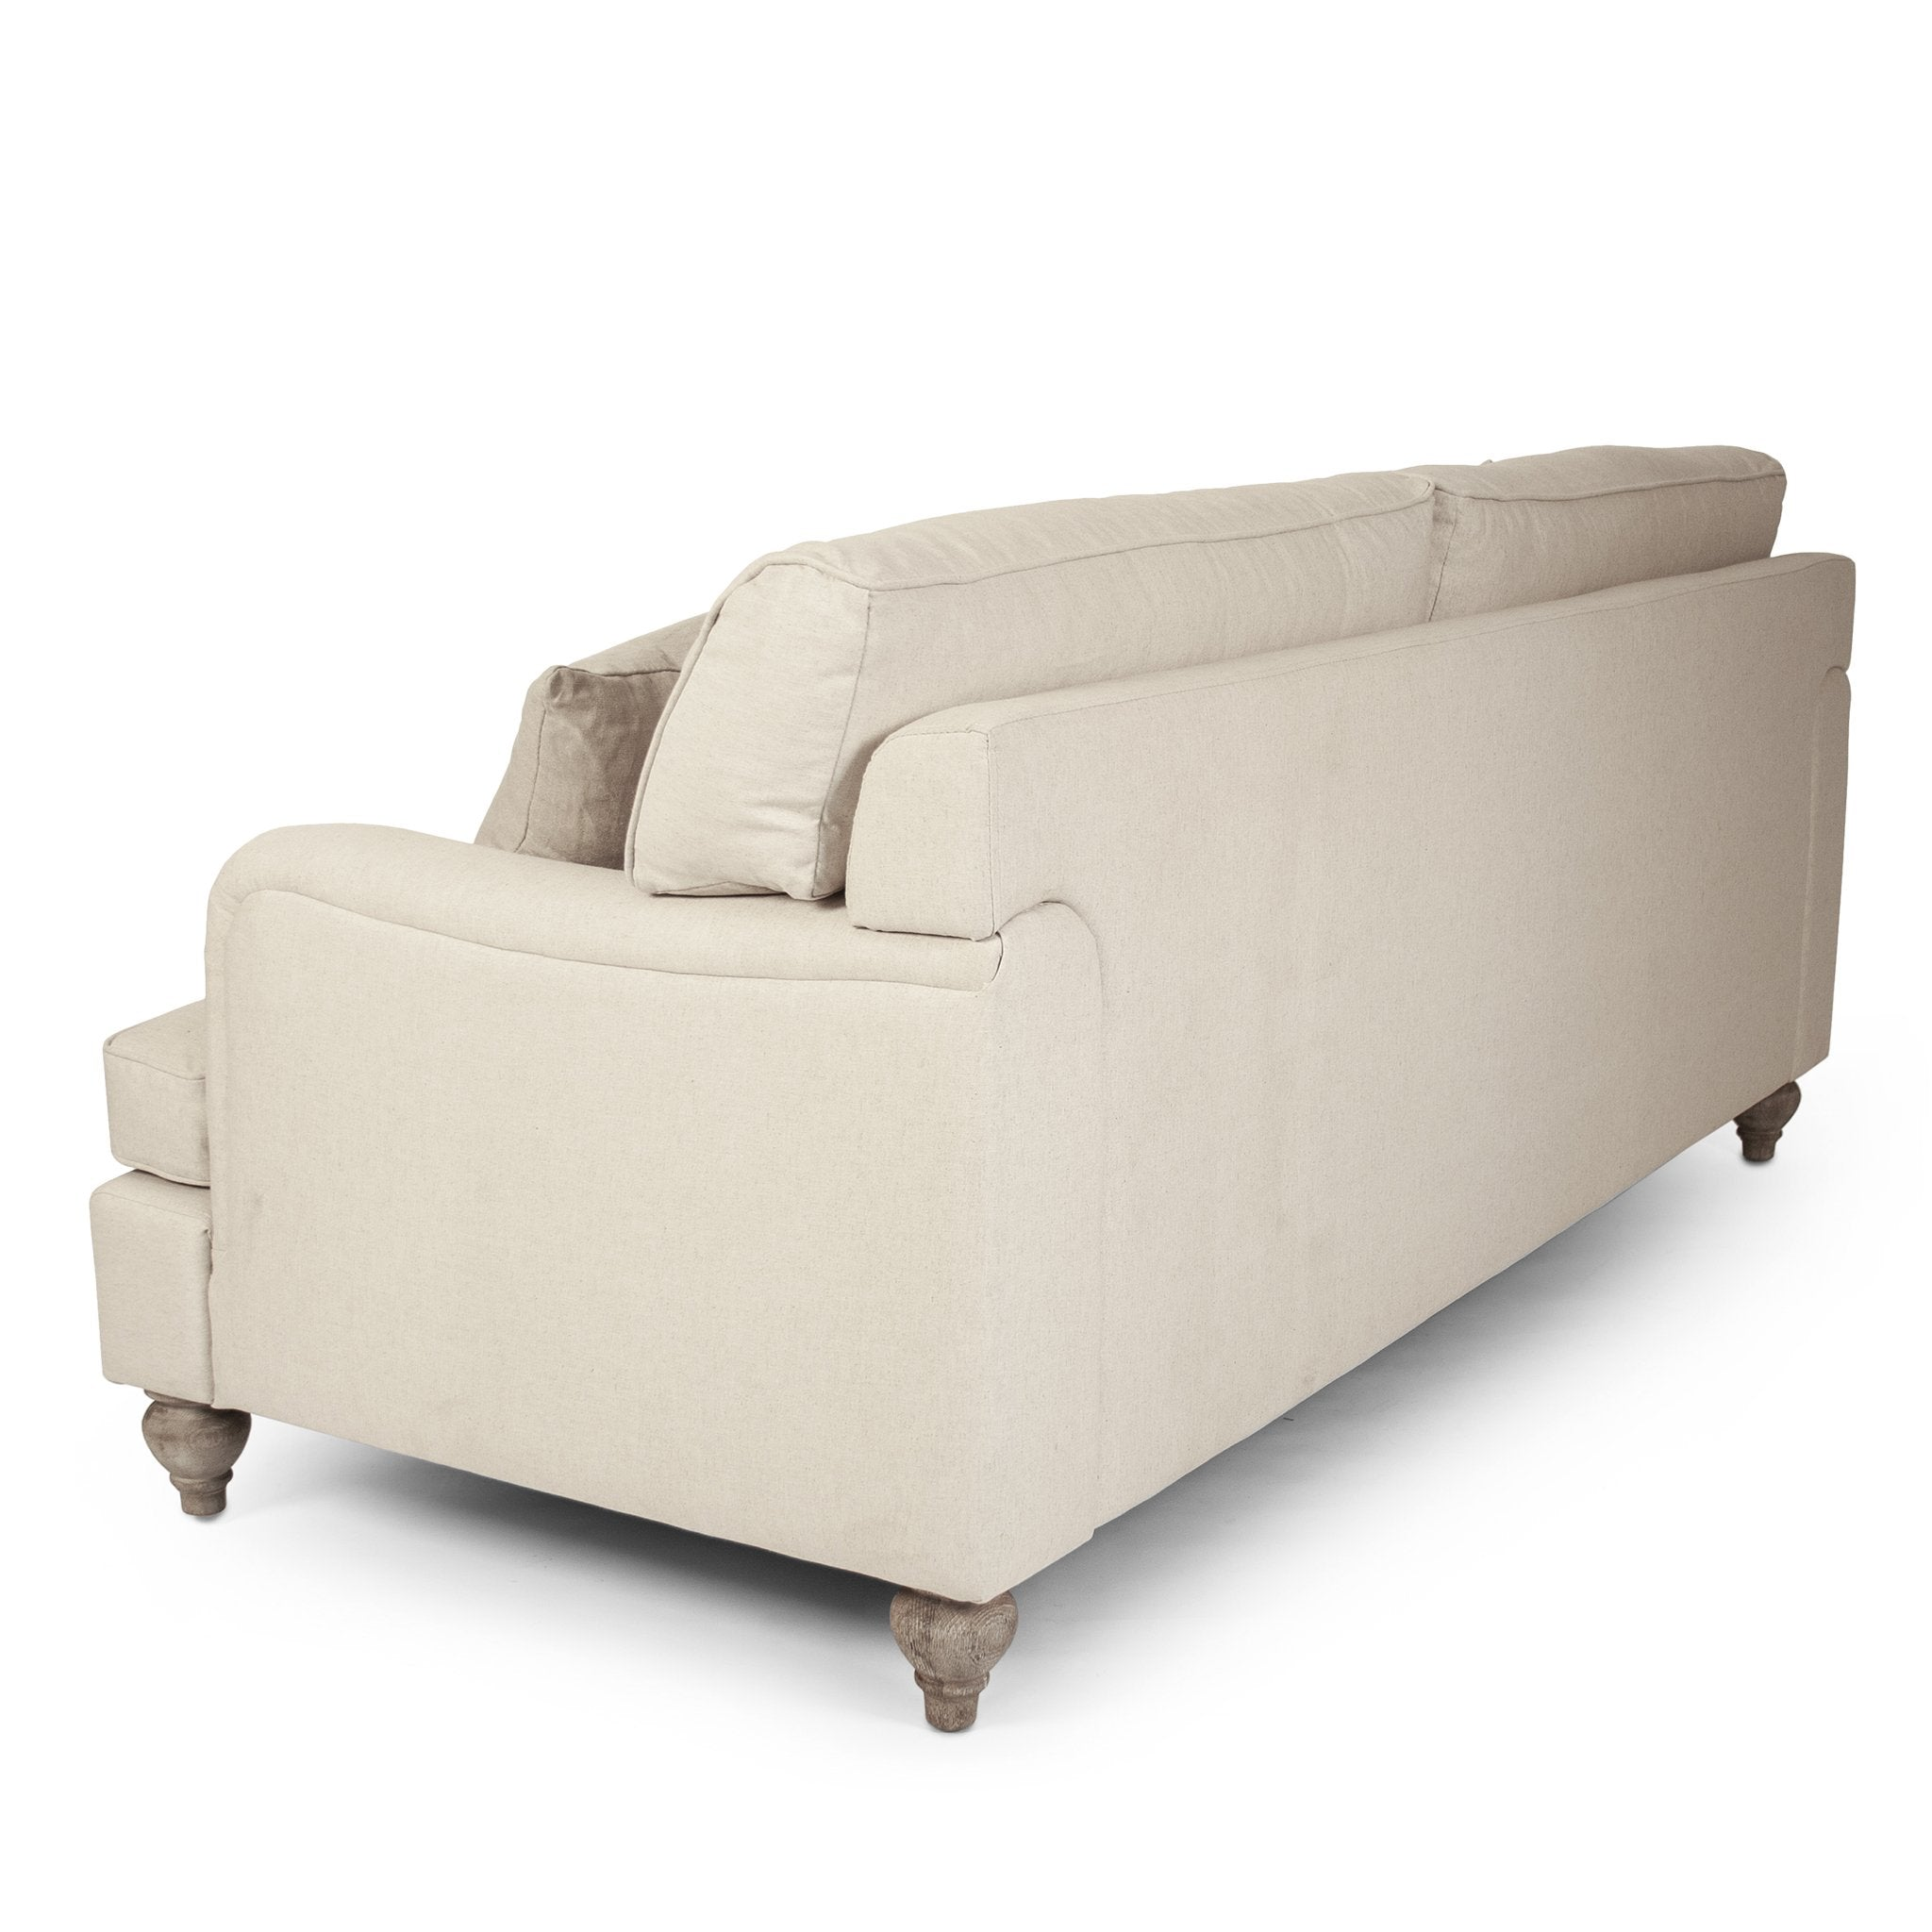 The Classic Cotton Sofa